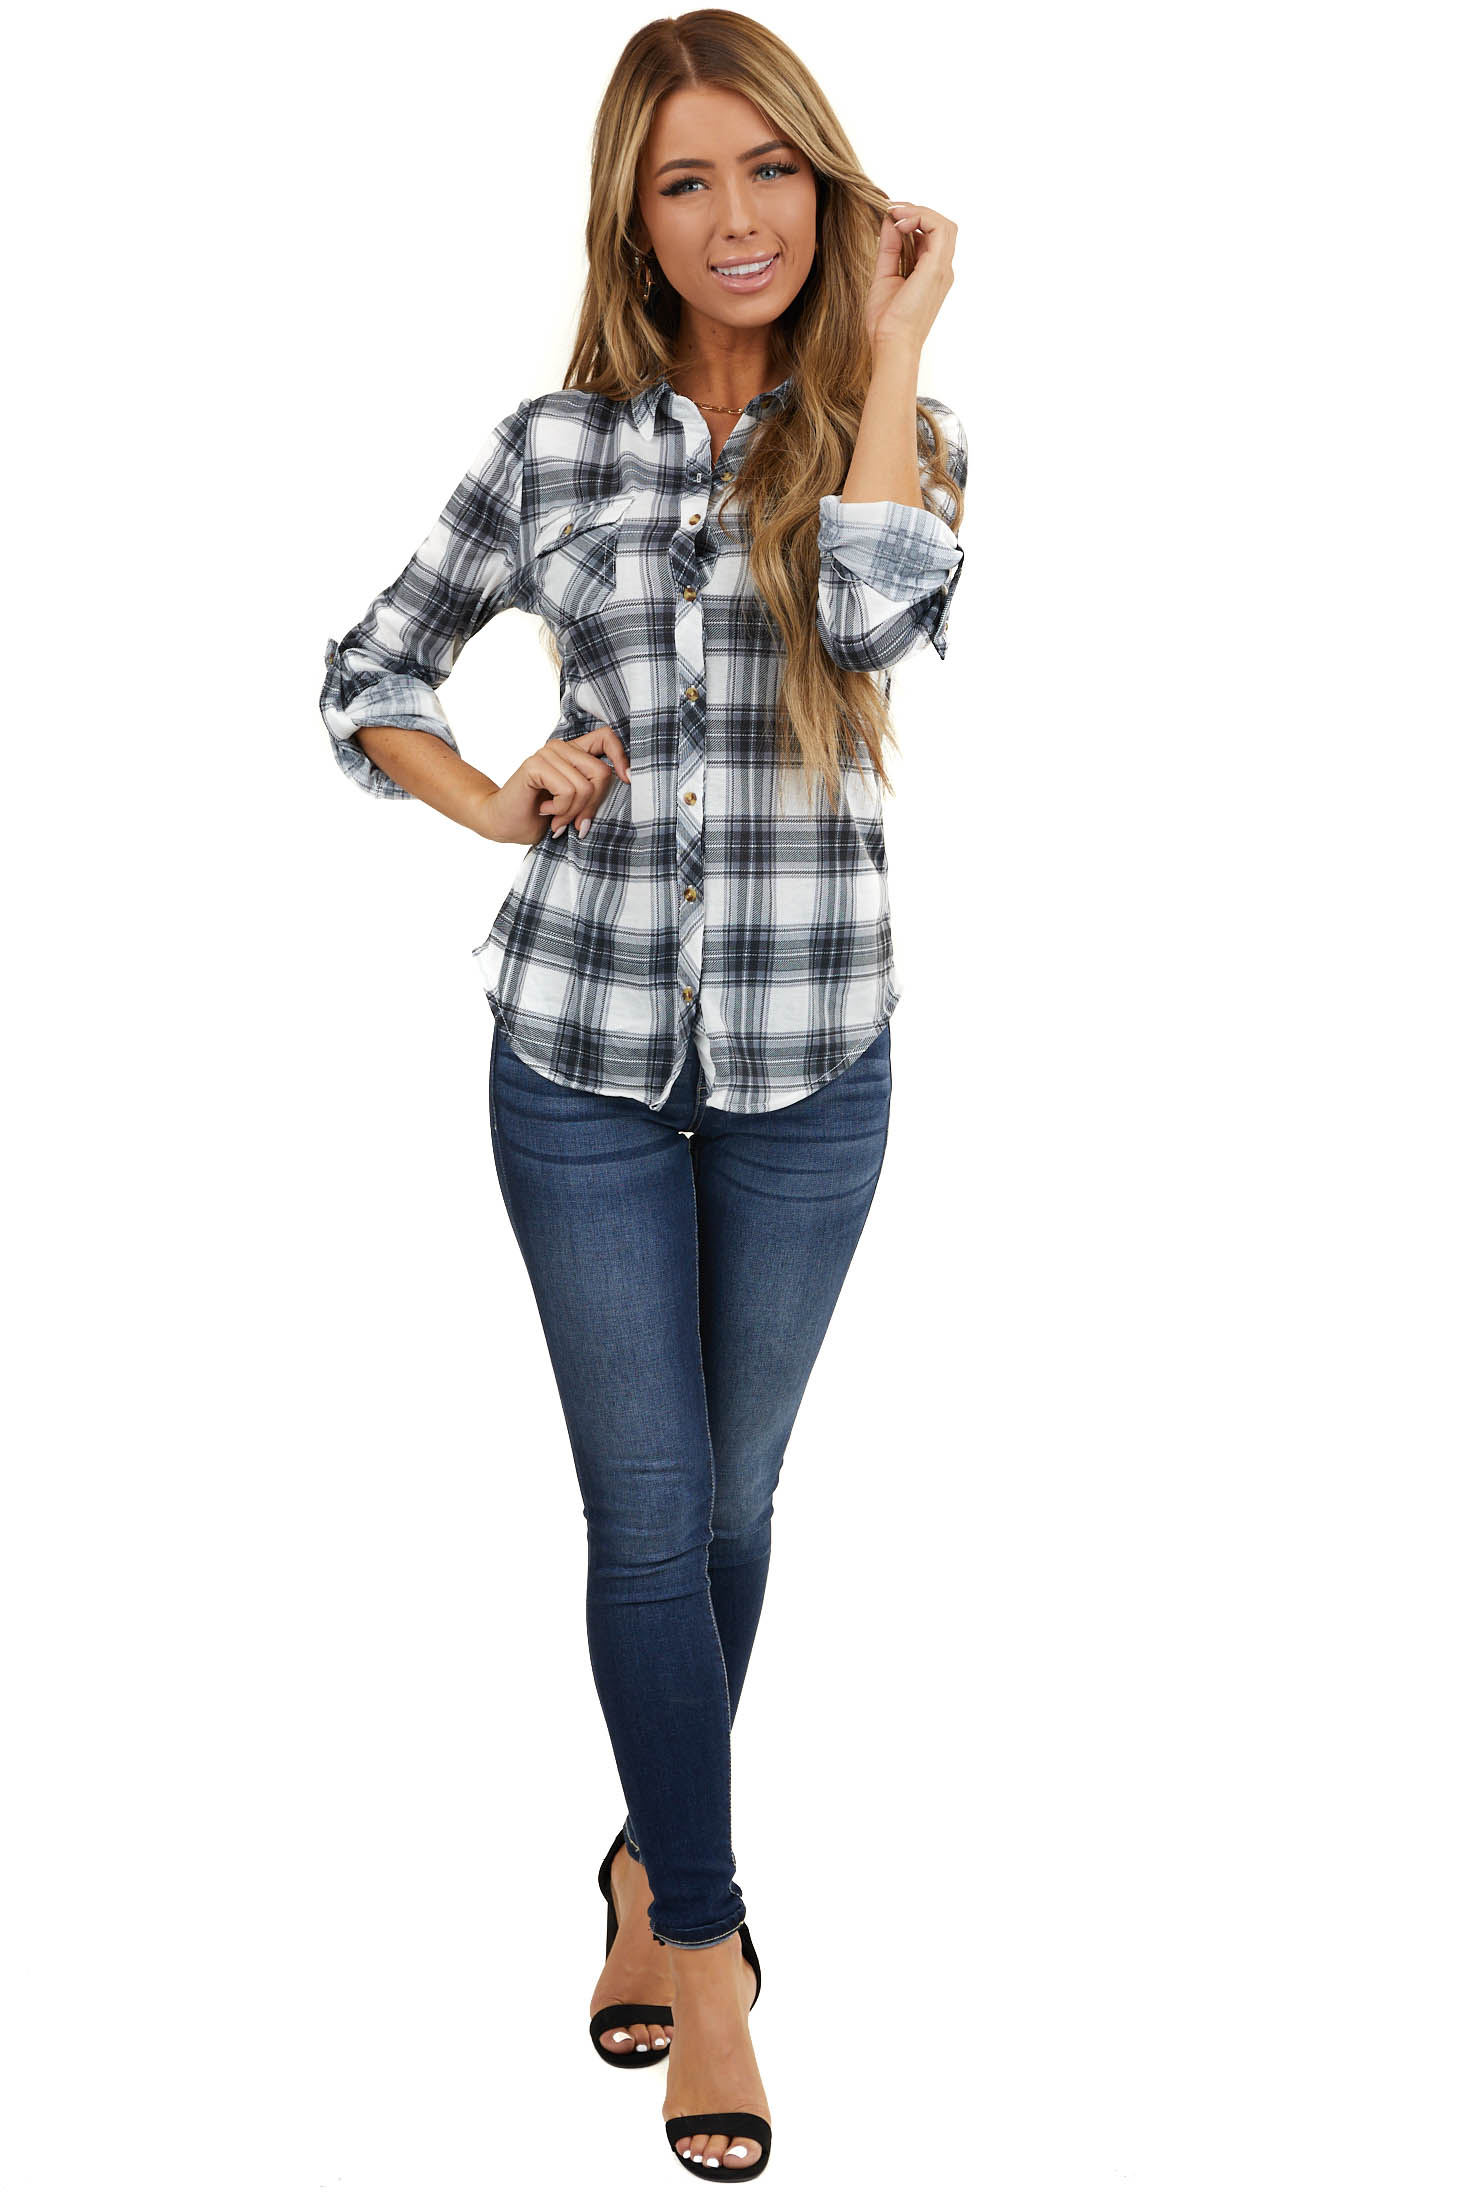 Black and Ivory Plaid Button Up Top with Chest Pockets